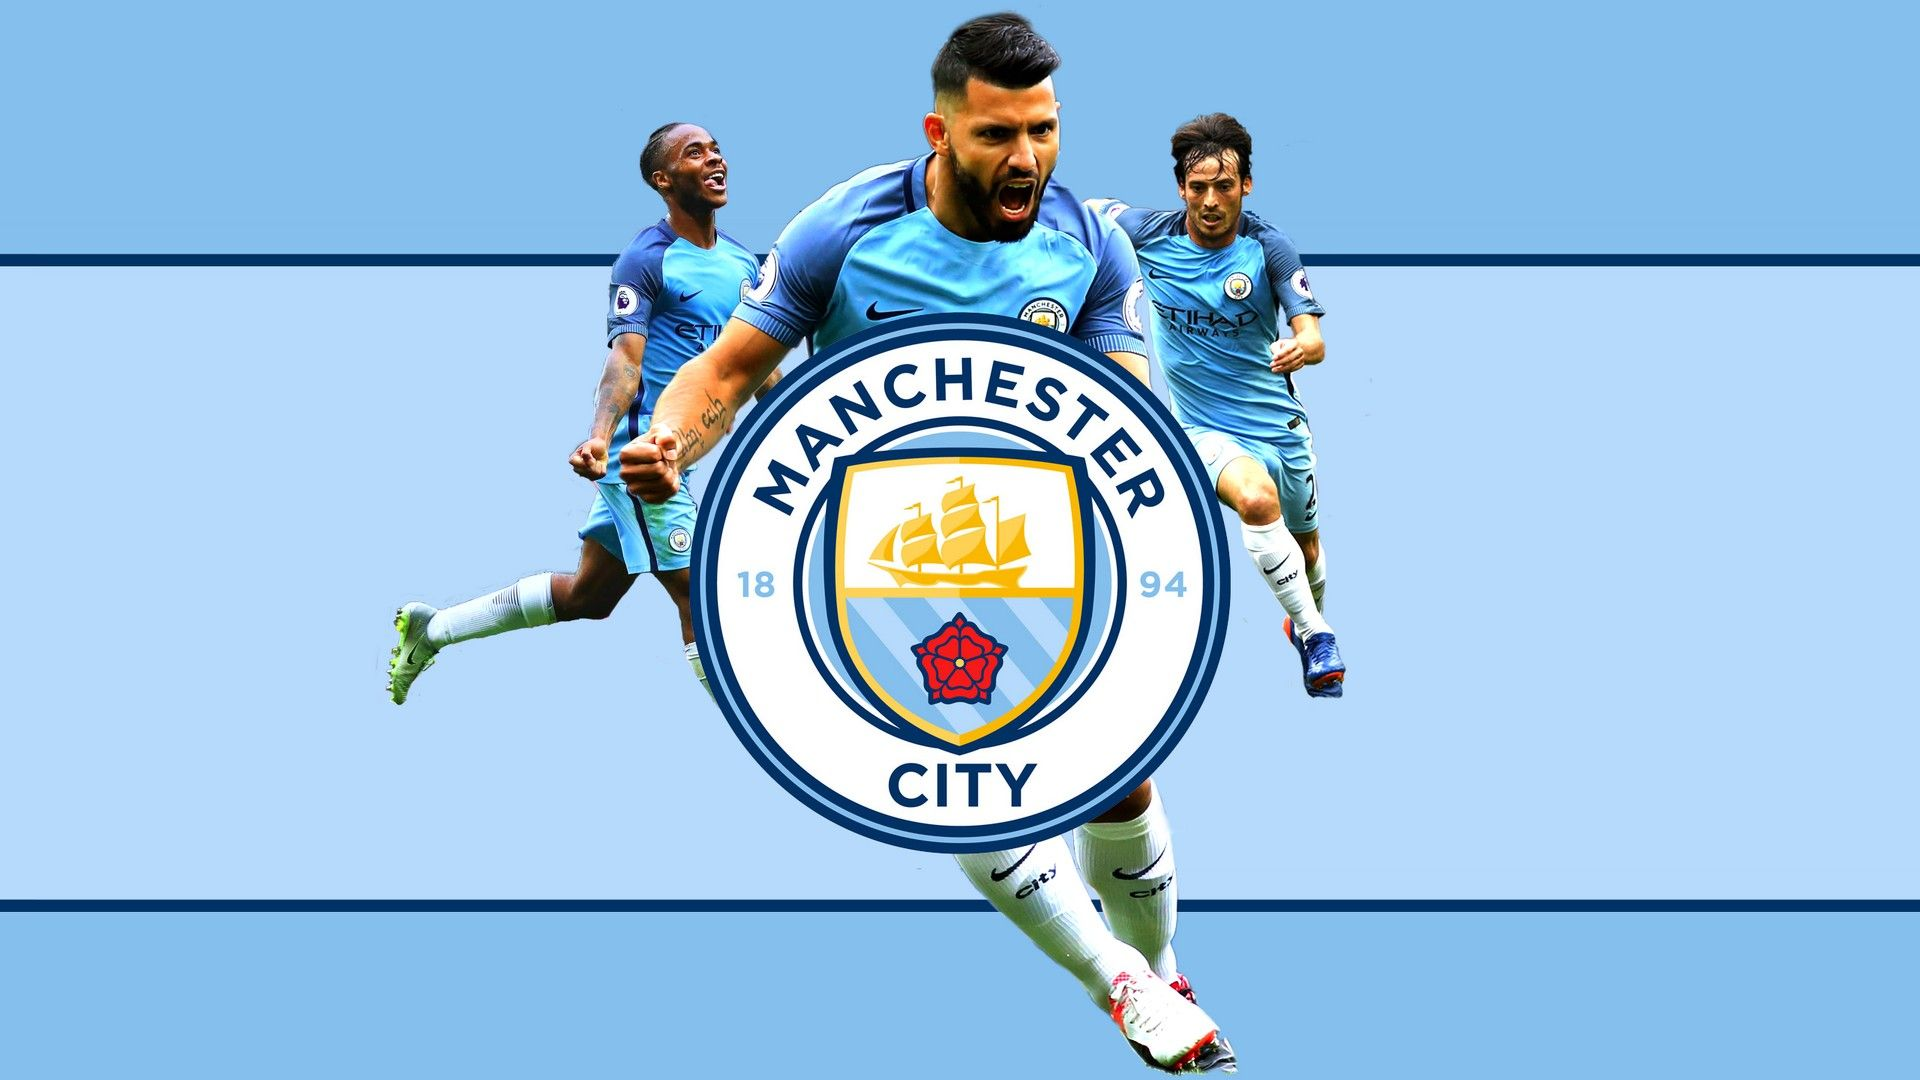 Manchester City wallpaper image